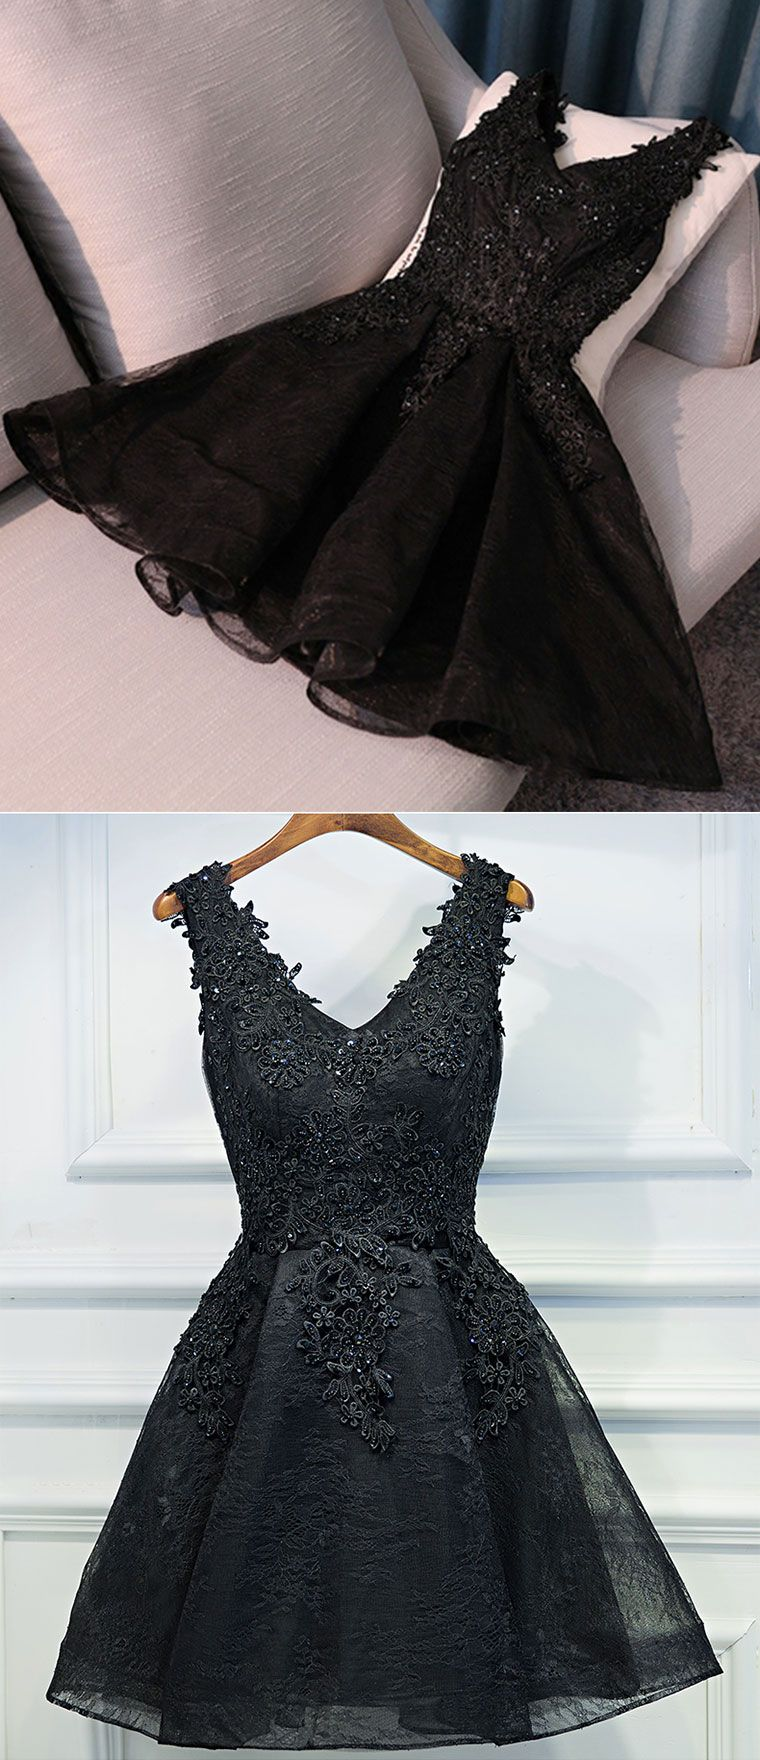 Dislax Sweetheart Lace Beading Tulle Short Homecoming Dresses Cocktail Dress